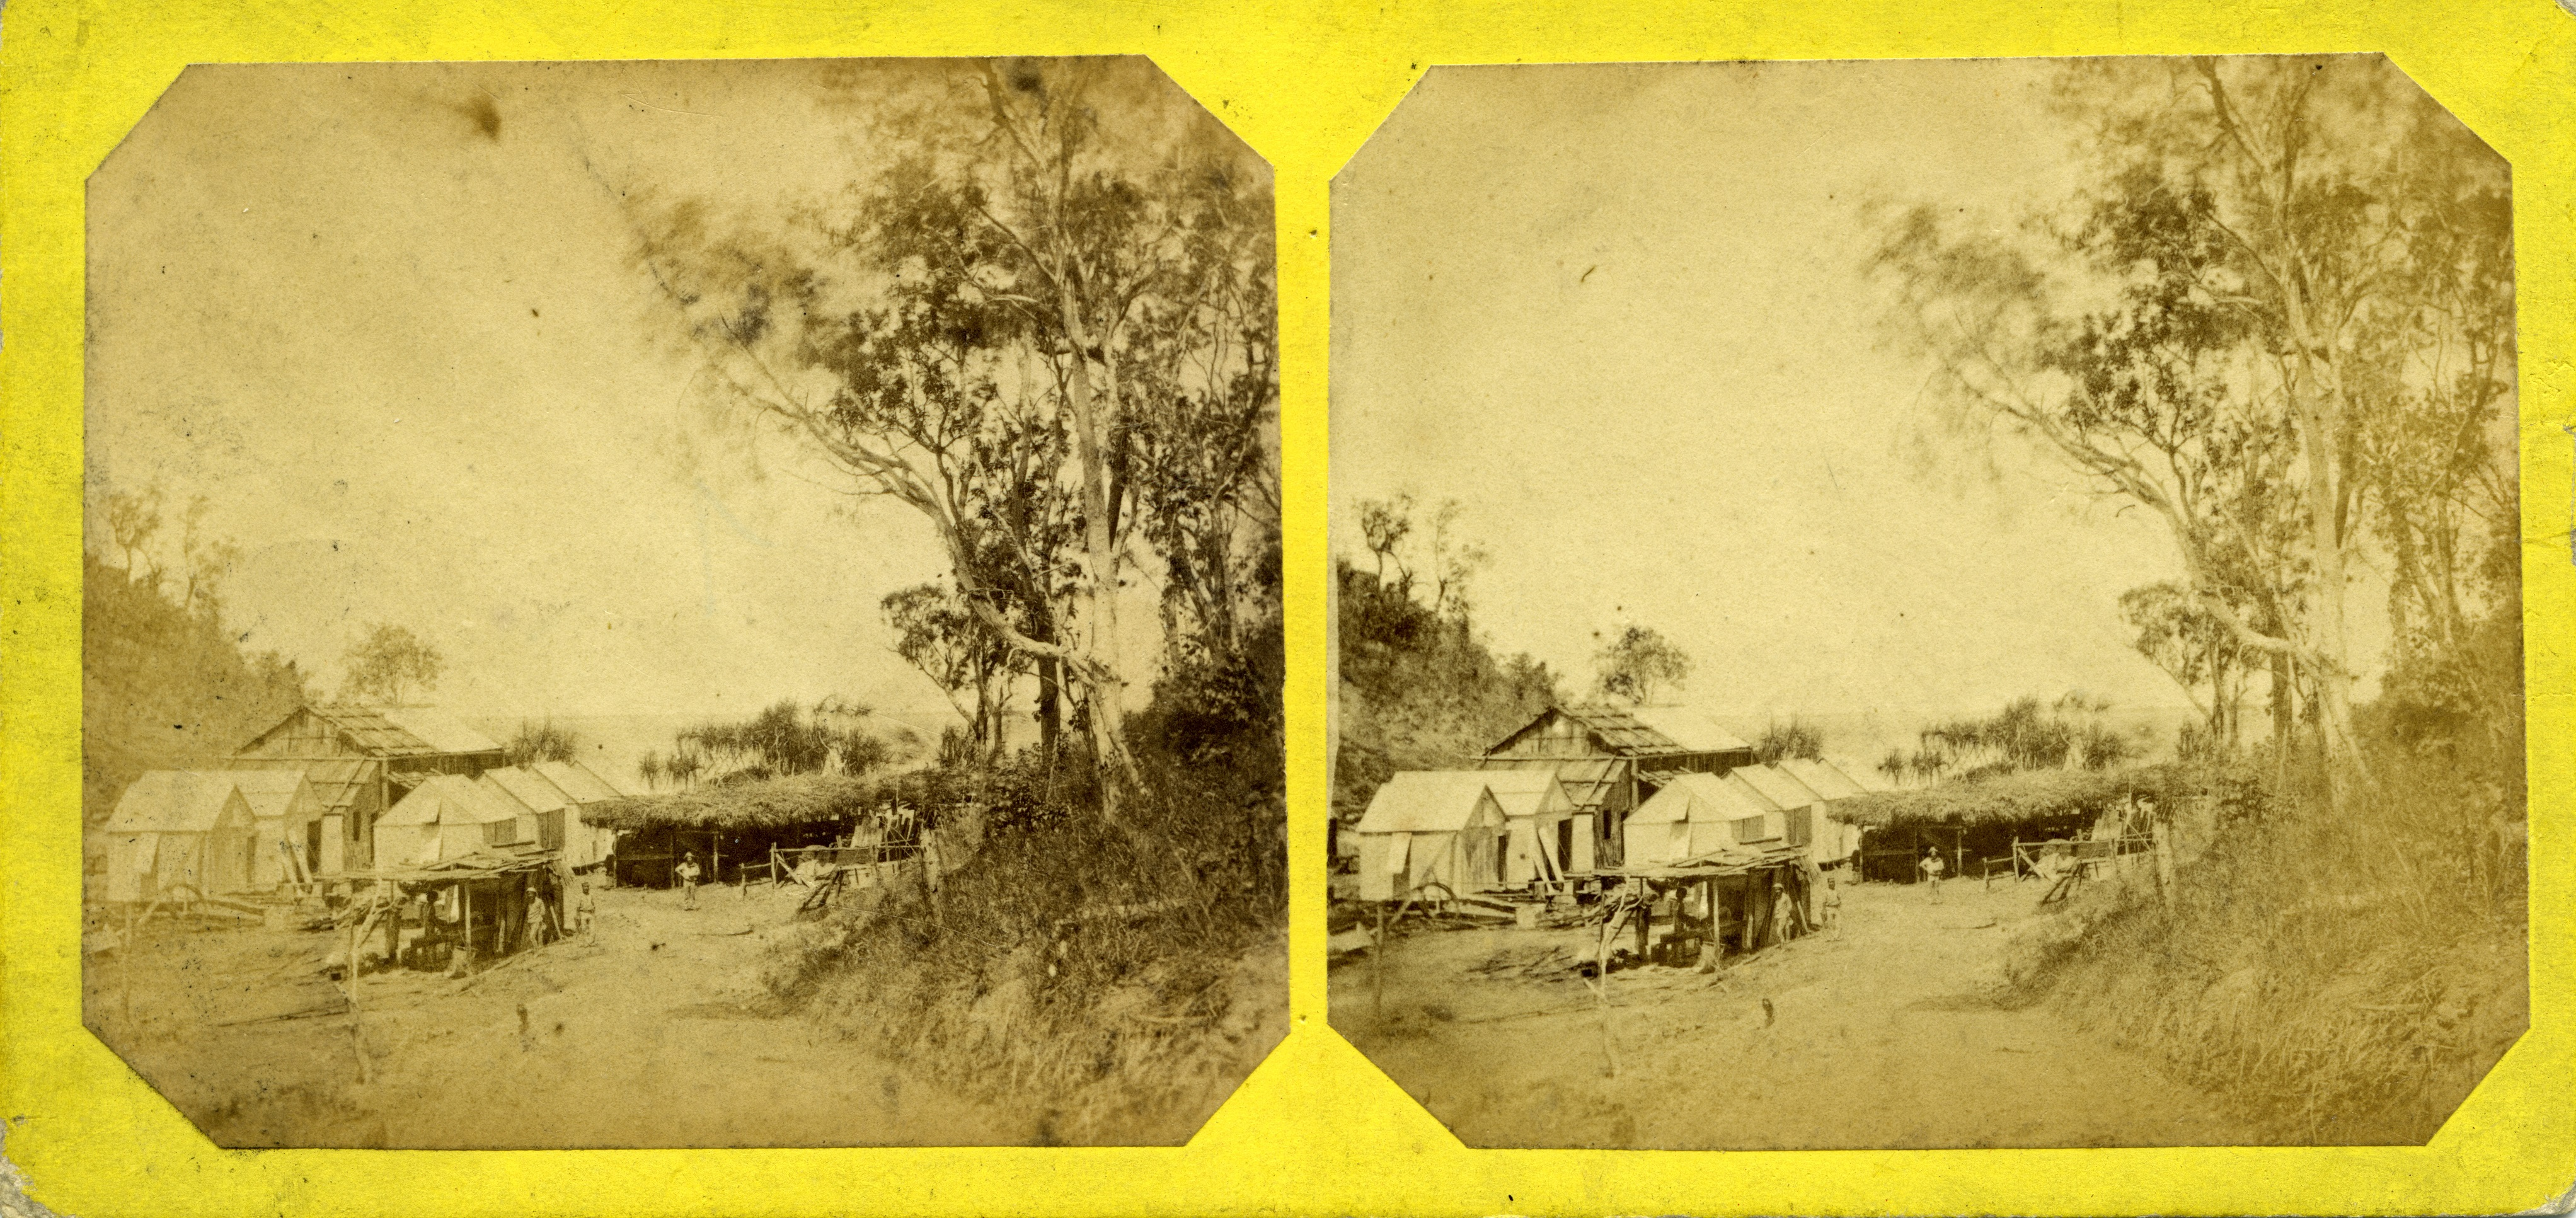 Stereoscopic image of Main Camp and stables roofed with bark, 1869